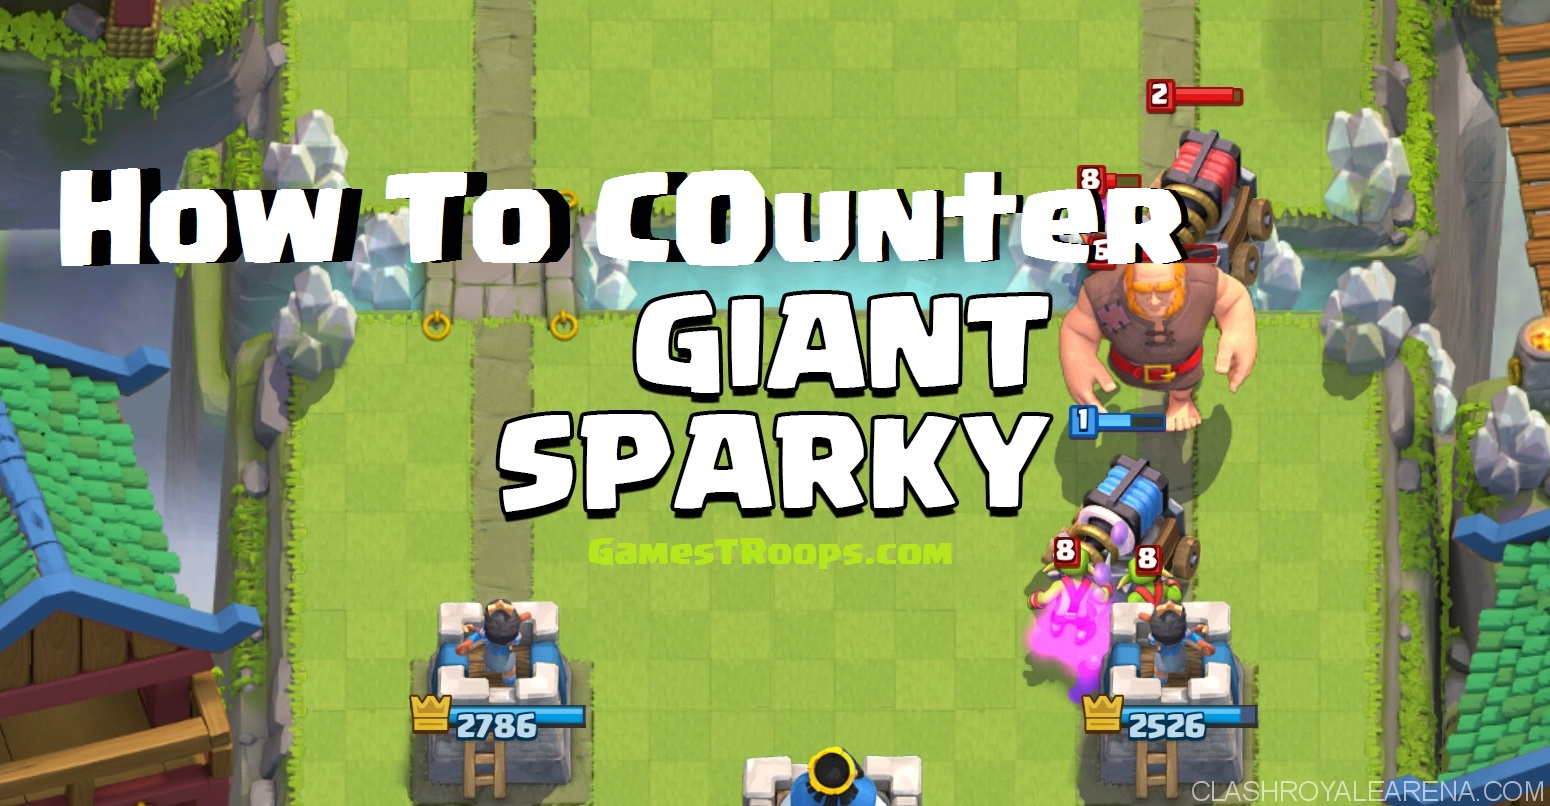 counter Giant Sparky